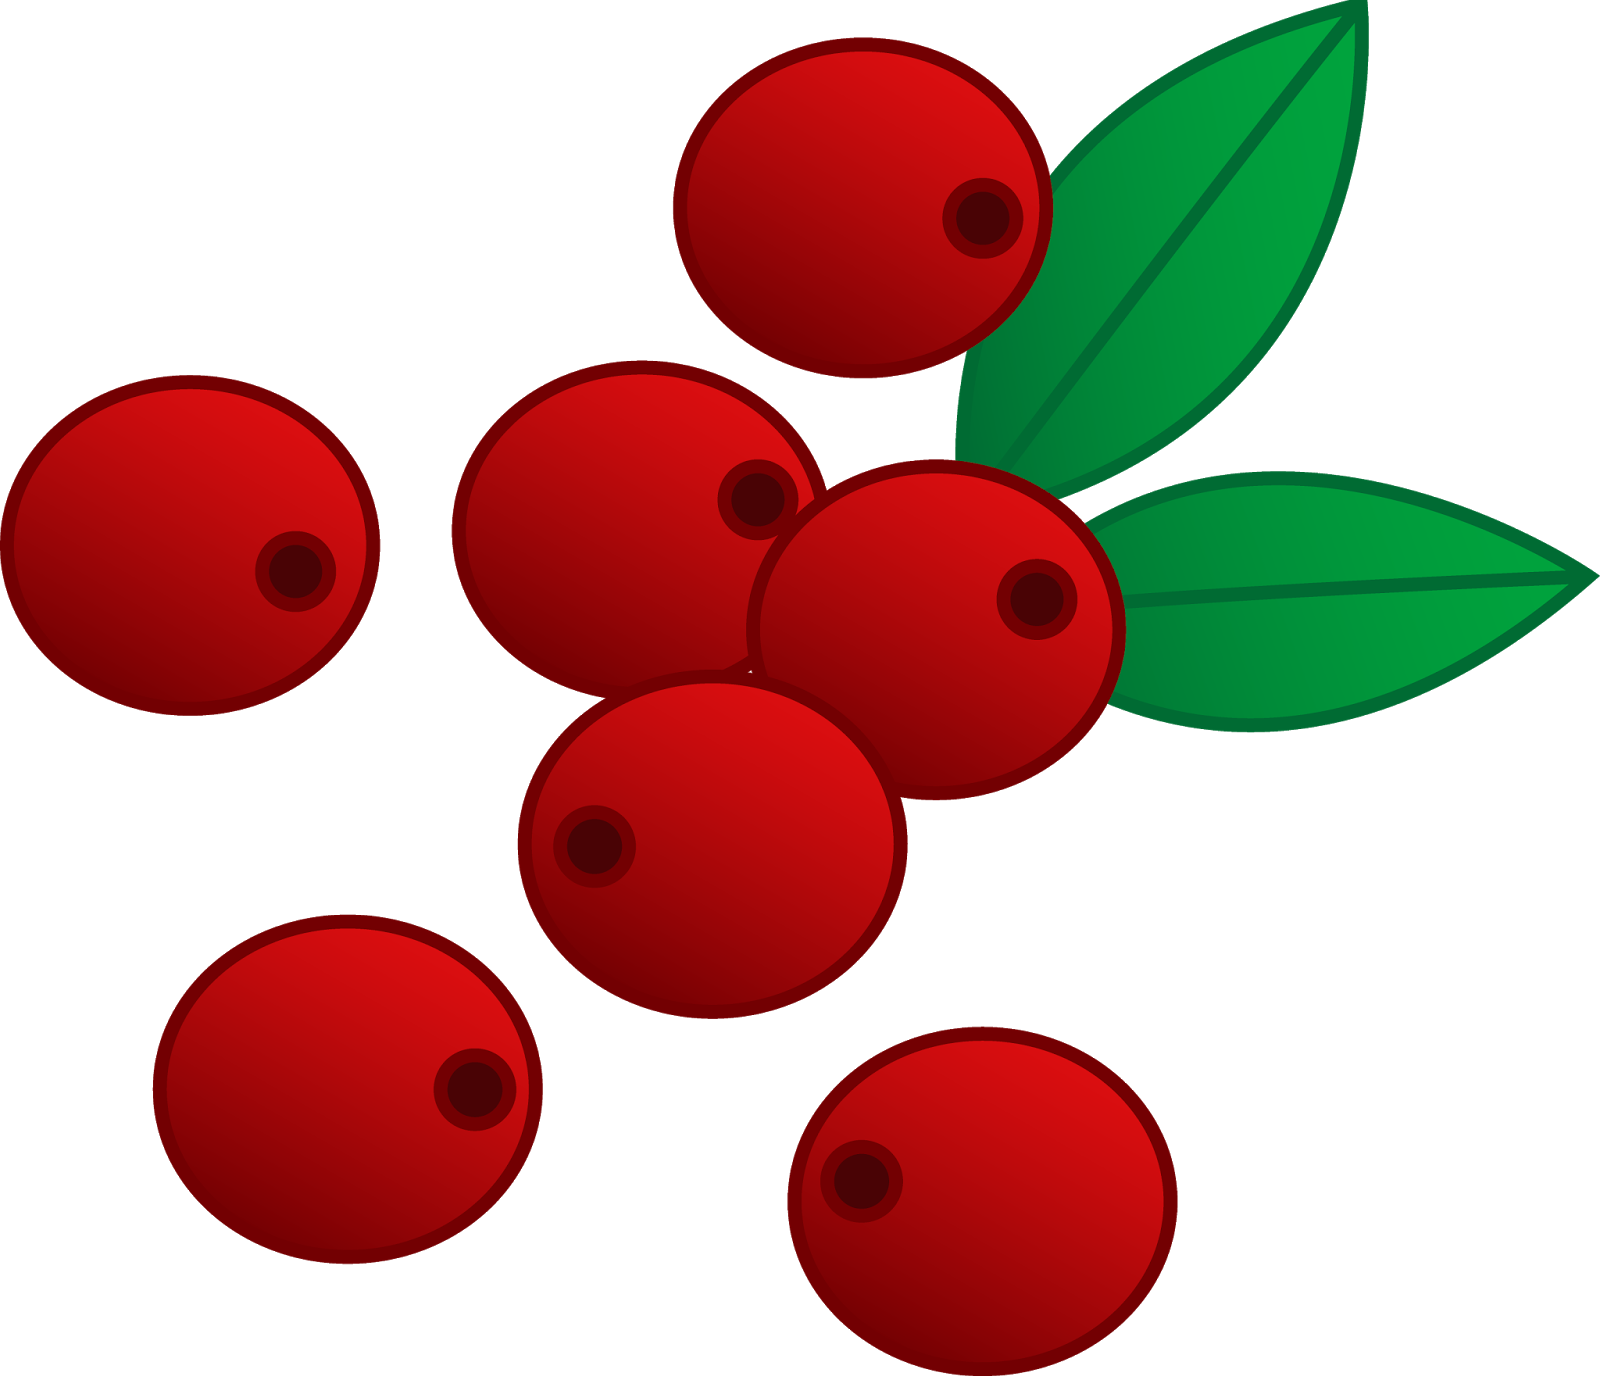 Apple cranberry clipart png royalty free download 28+ Collection of Single Cranberry Clipart | High quality, free ... png royalty free download